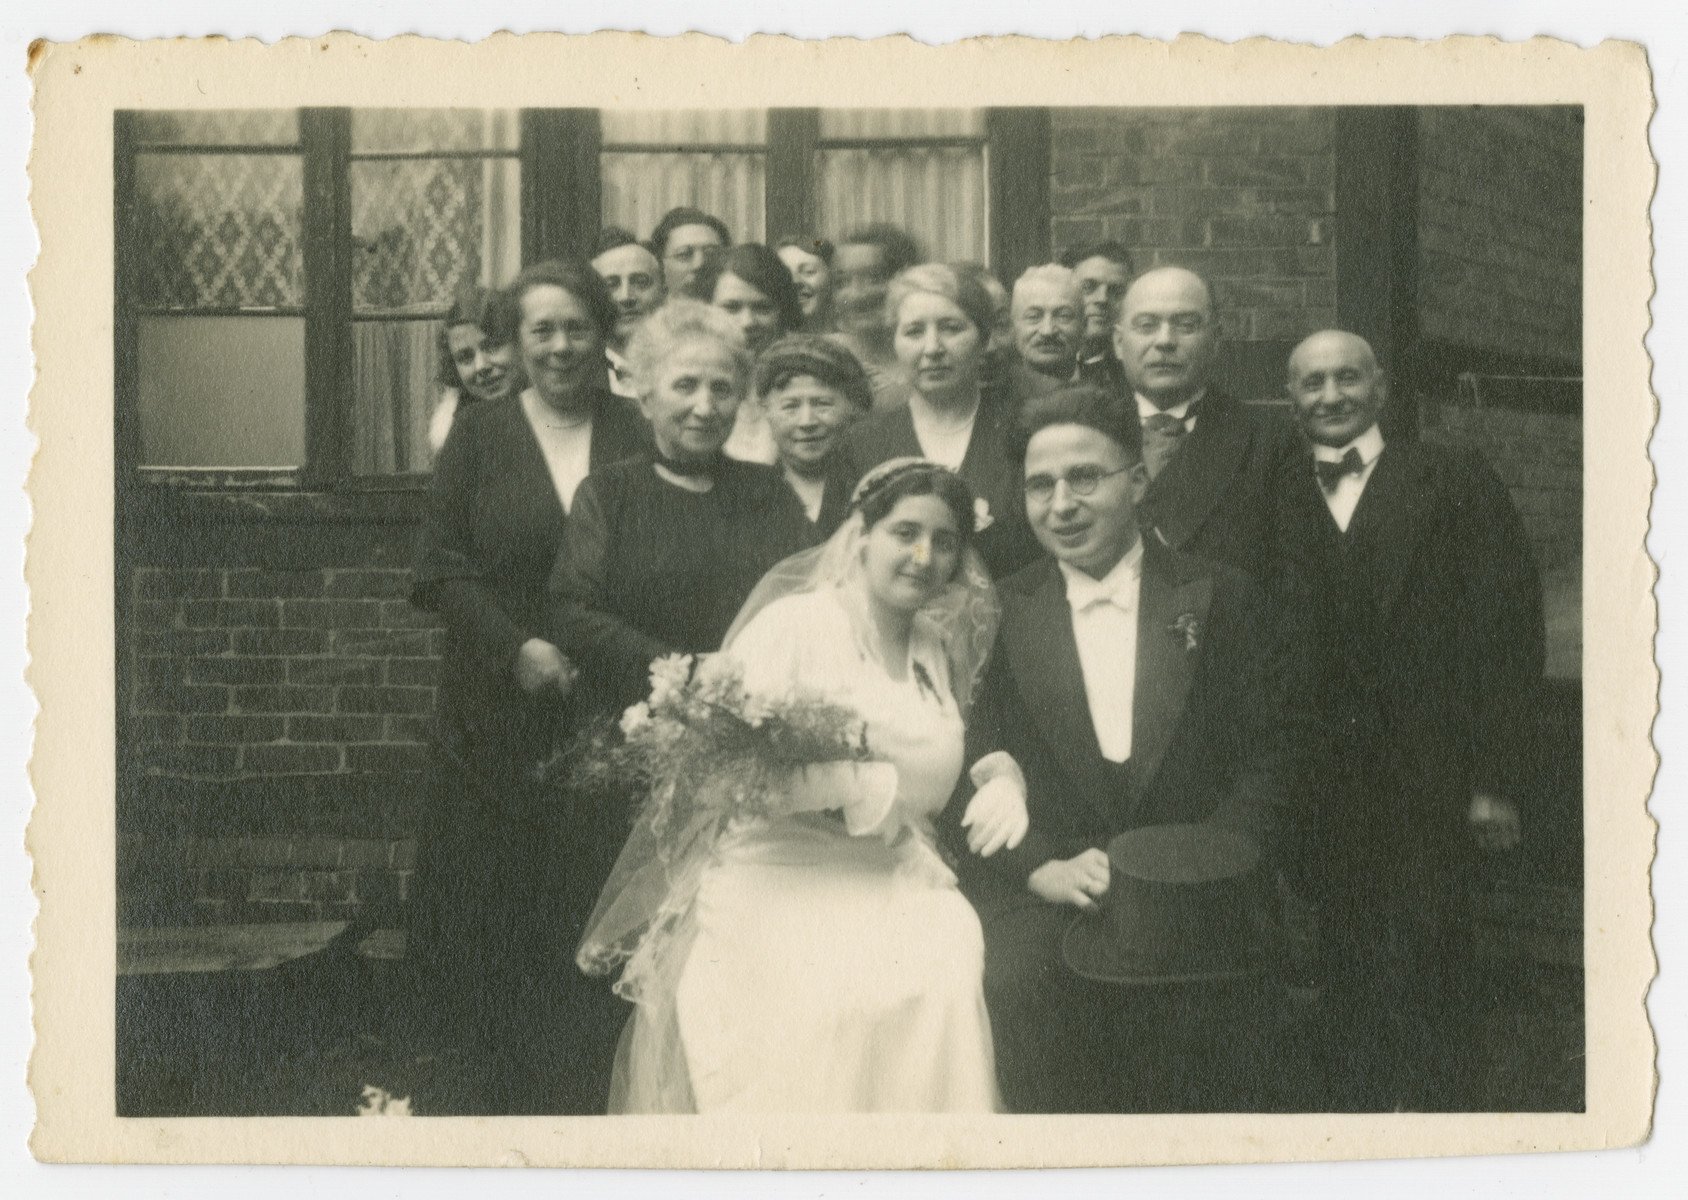 Family wedding portrait of Gretel David and Walter Kleeblatt.  Also pictured from left to right are  Helene Kleeblatt (left),  Paula David (middle), and next to her is Rabbi Moritz David, who performed the ceremony. Behind them are Adele Oschitzky (mother of Gretel's friend Erika), and Rosa Grueneberg, (the short lady whose head appears between Helene Kleeblatt and Paula David.  In the back are Edith Hirsch, Walter Hirsch, Erika Oschitzky and Gretel's aunt Flora Stern.  With the exception of Gretel and Walter Kleeblatt and Rabbi David, the rest of the people in the photo did not survive the Holocaust.